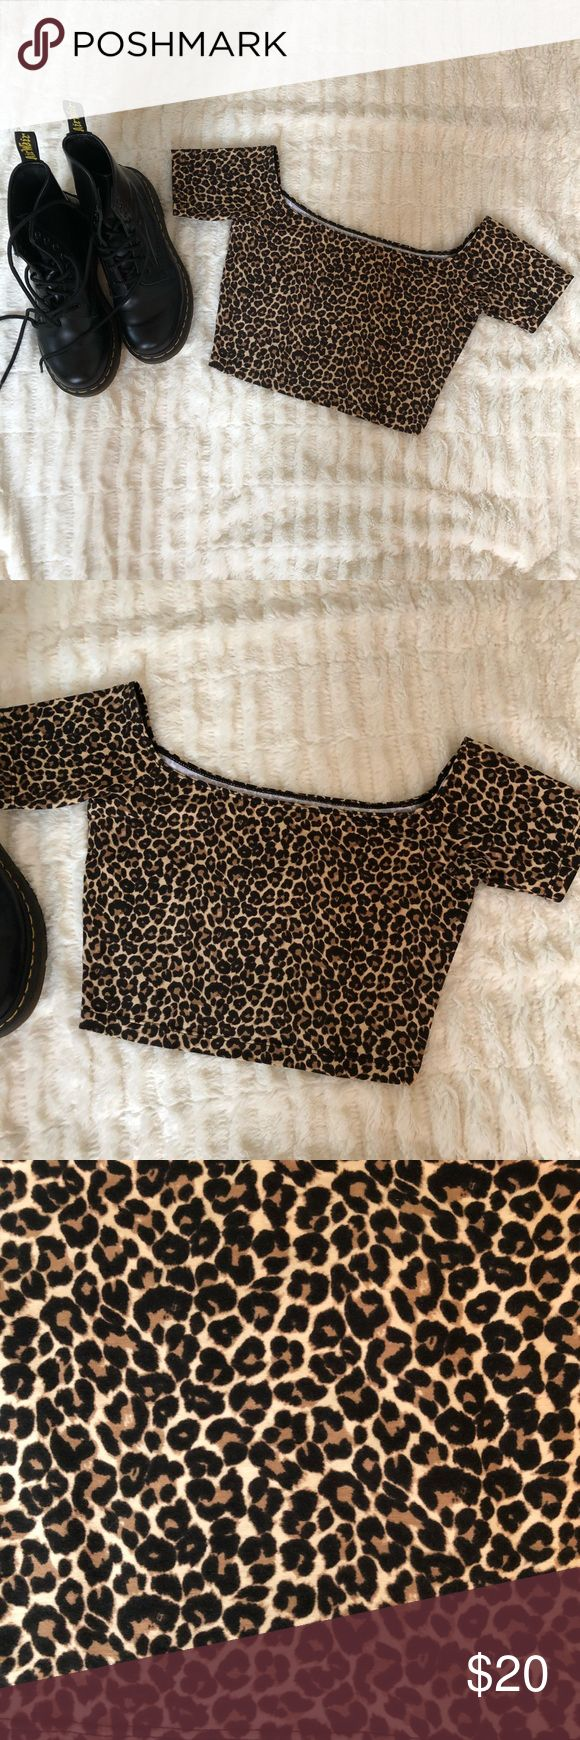 """NEW American Apparel Cheetah Print Crop Top M Animal prints are trending and this cheetah off-shoulder crop top is a perfect addition to your fall wardrobe. Layer with a cardigan for an effortless everyday look. Made from cotton and elastane.  Measures 12"""" length and 26"""" bust. Form fitting with plenty of stretch. Size M.  New Without Tags. American Apparel Tops Crop Tops"""